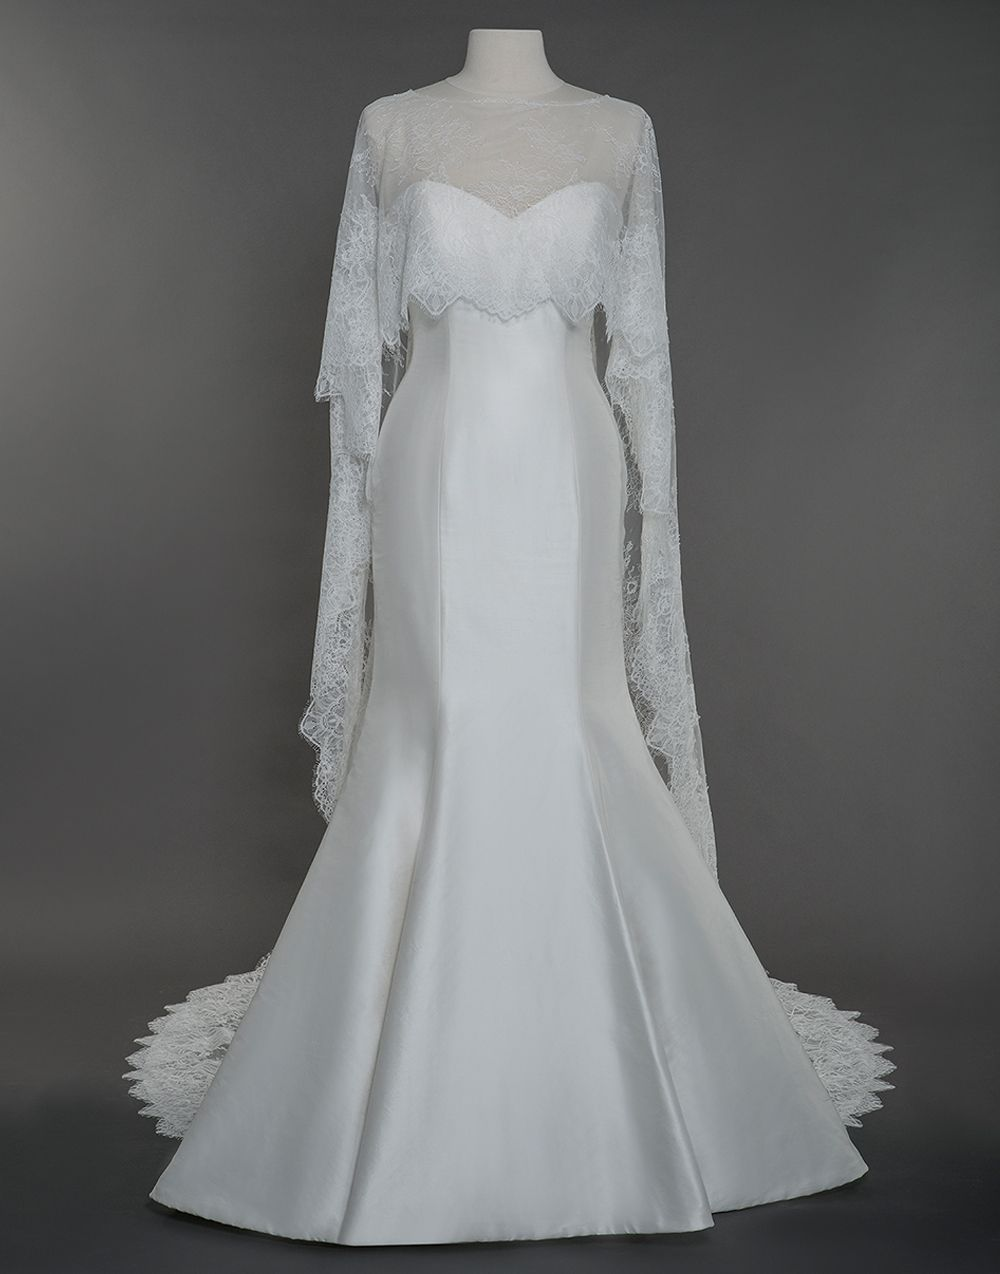 Sincerity Wedding Accessories Style A107 This All Over Chantilly Lace Cape With Train Is Ethe Wedding Dress Couture Designer Bridal Gowns Couture Bridal Gowns